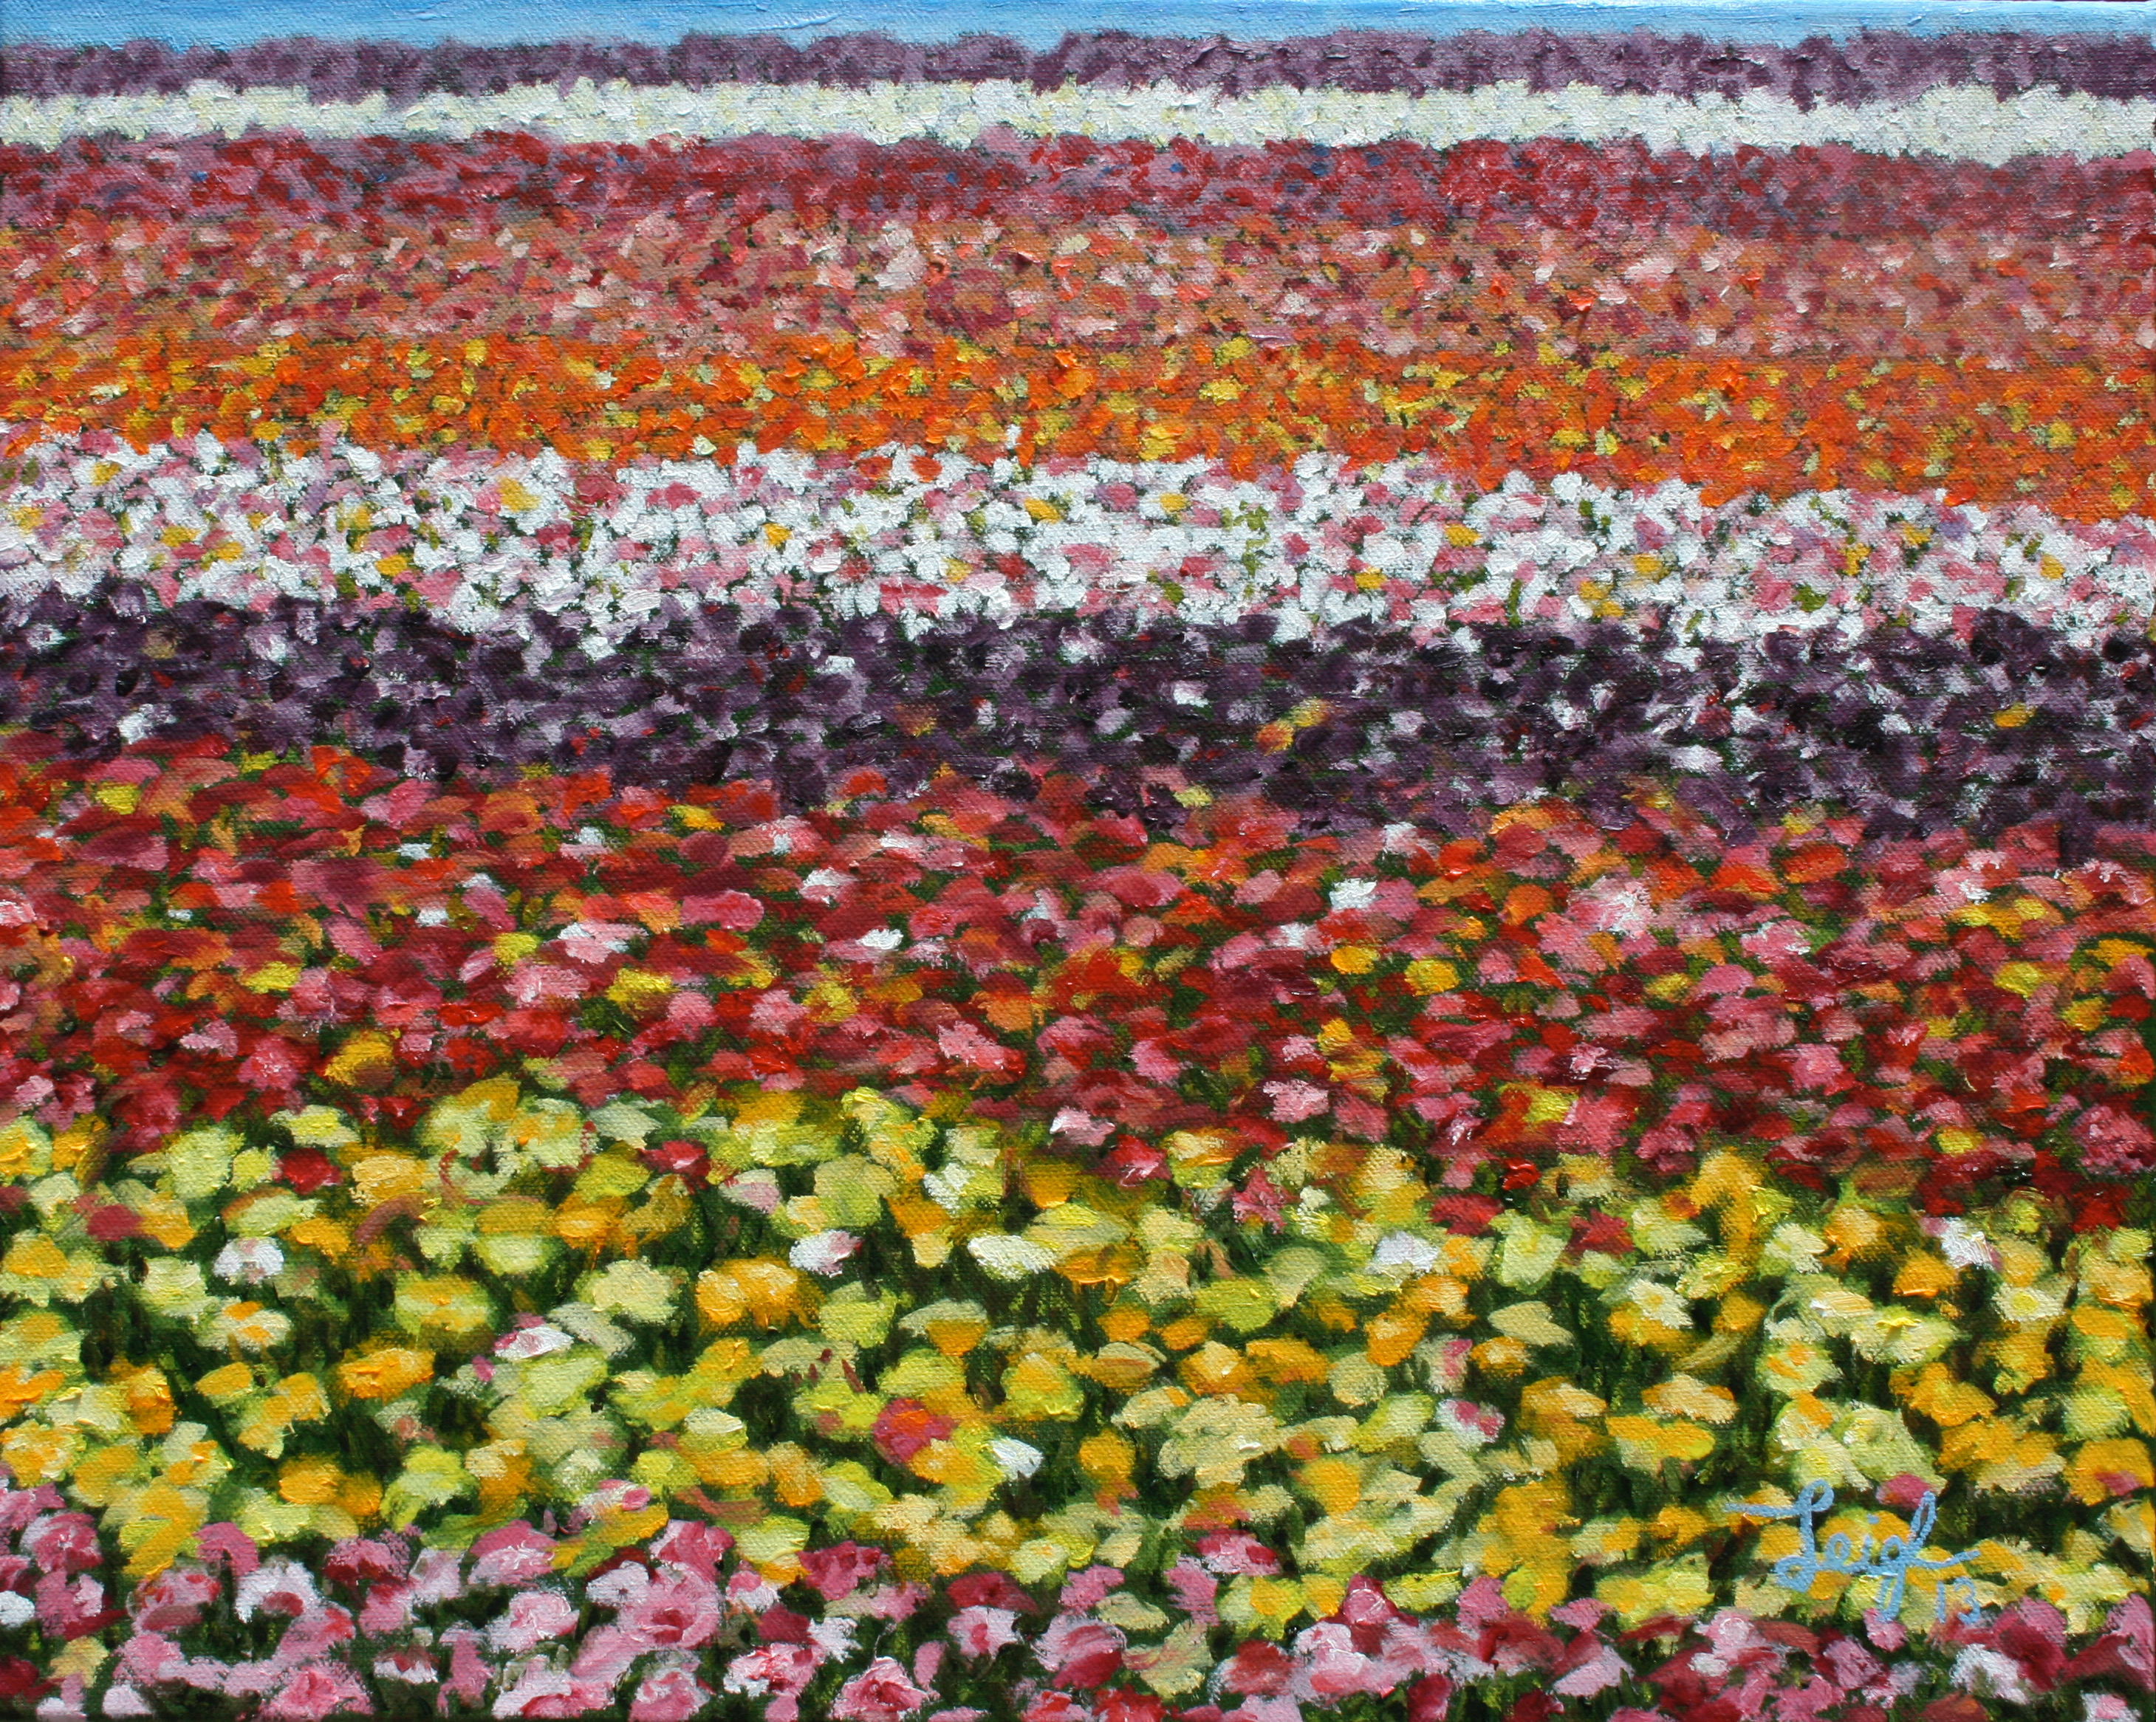 Carlsbad Flower Fields #2  ~   Private Party Carlsbad, CA 2013 • 20 x 16